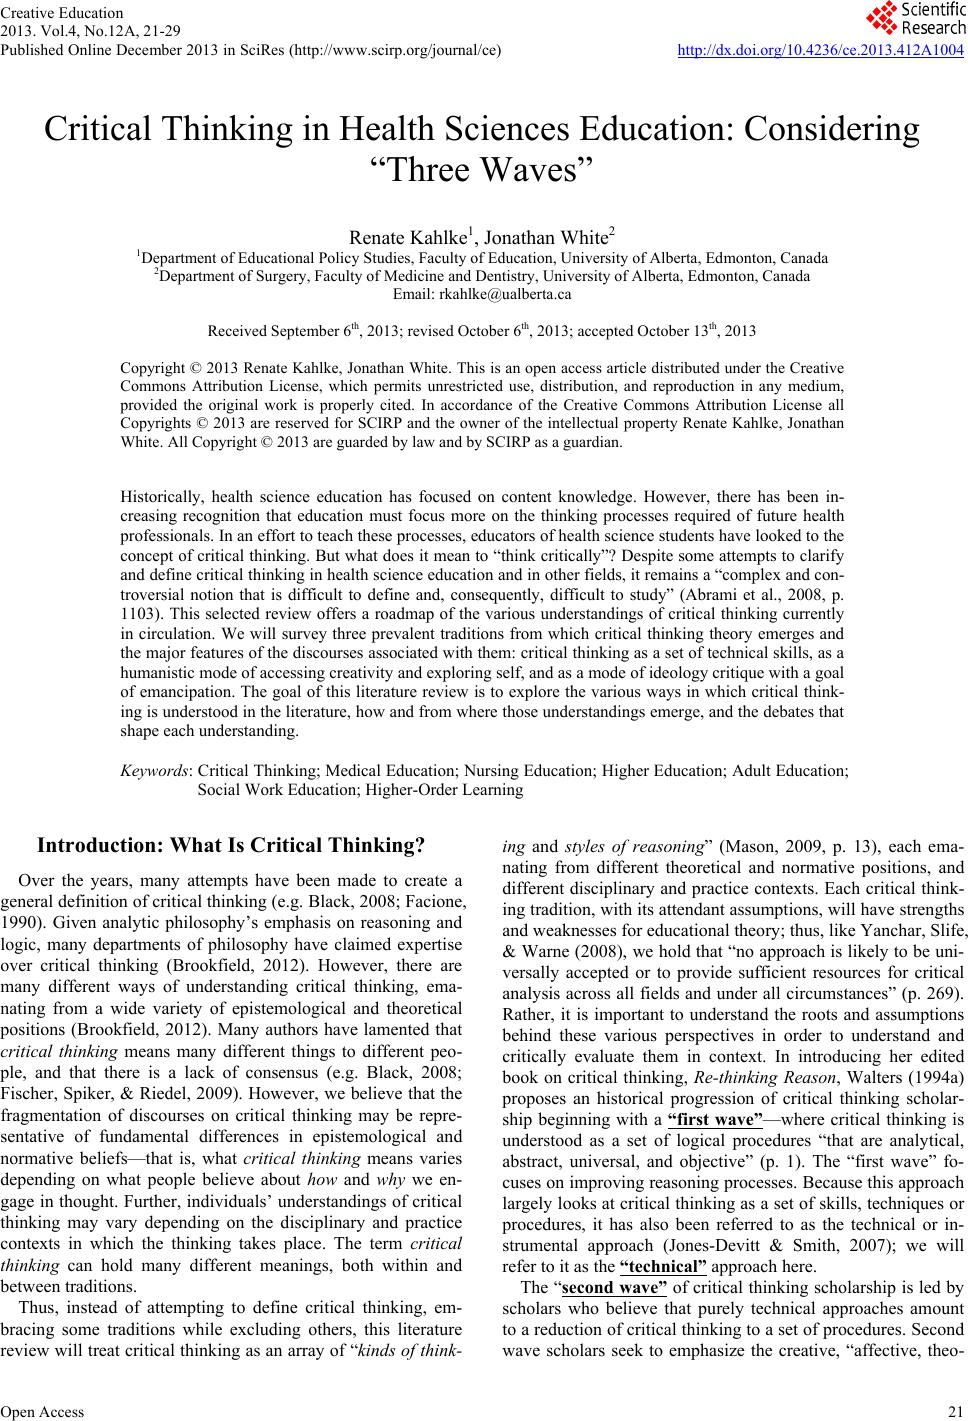 critical thinking dispositions among newly graduated nurses